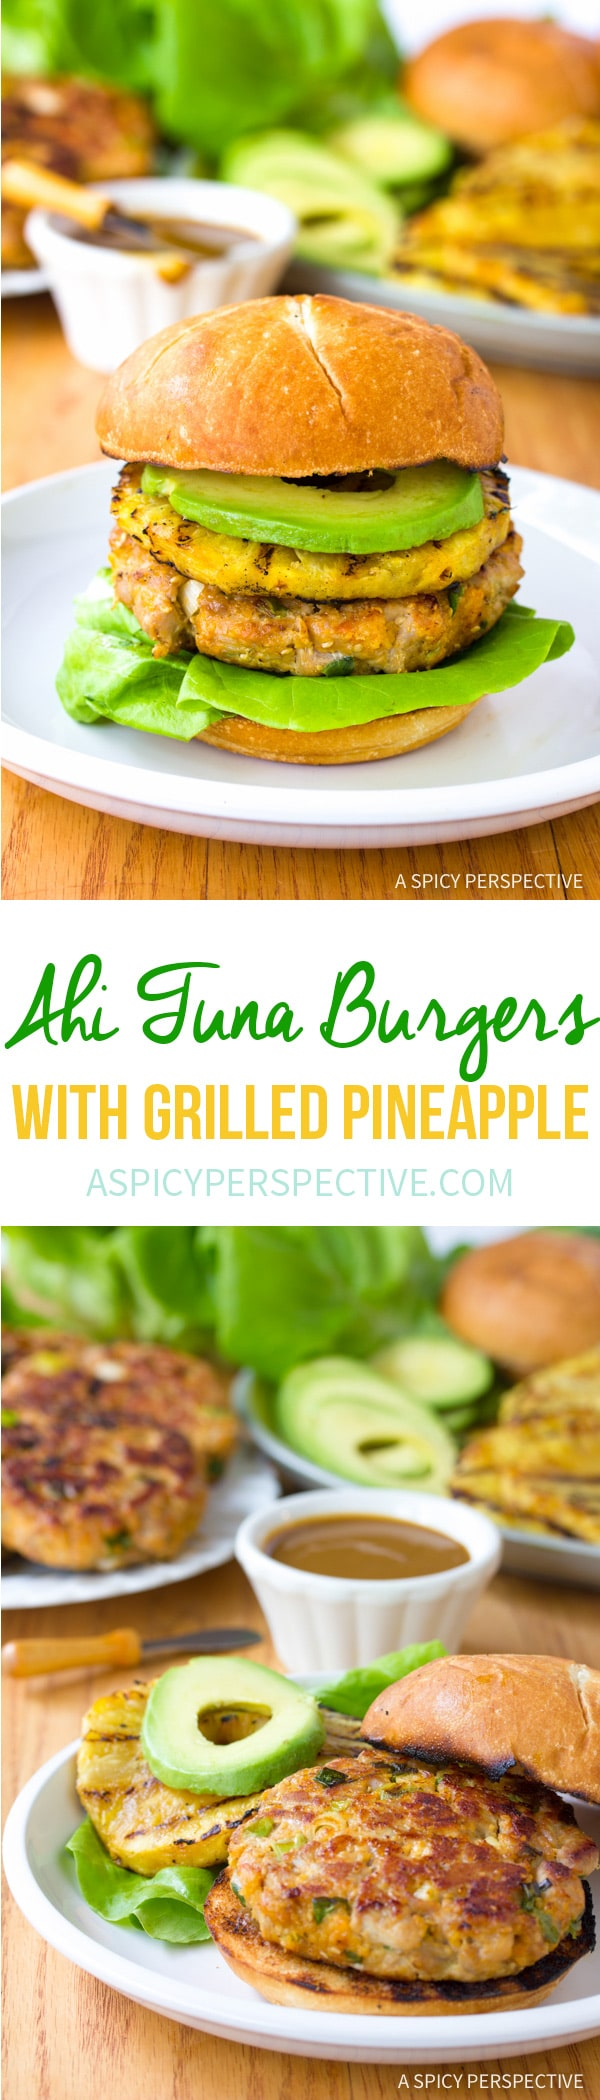 Amazing Ahi Tuna Burgers with Grilled Pineapple Recipe